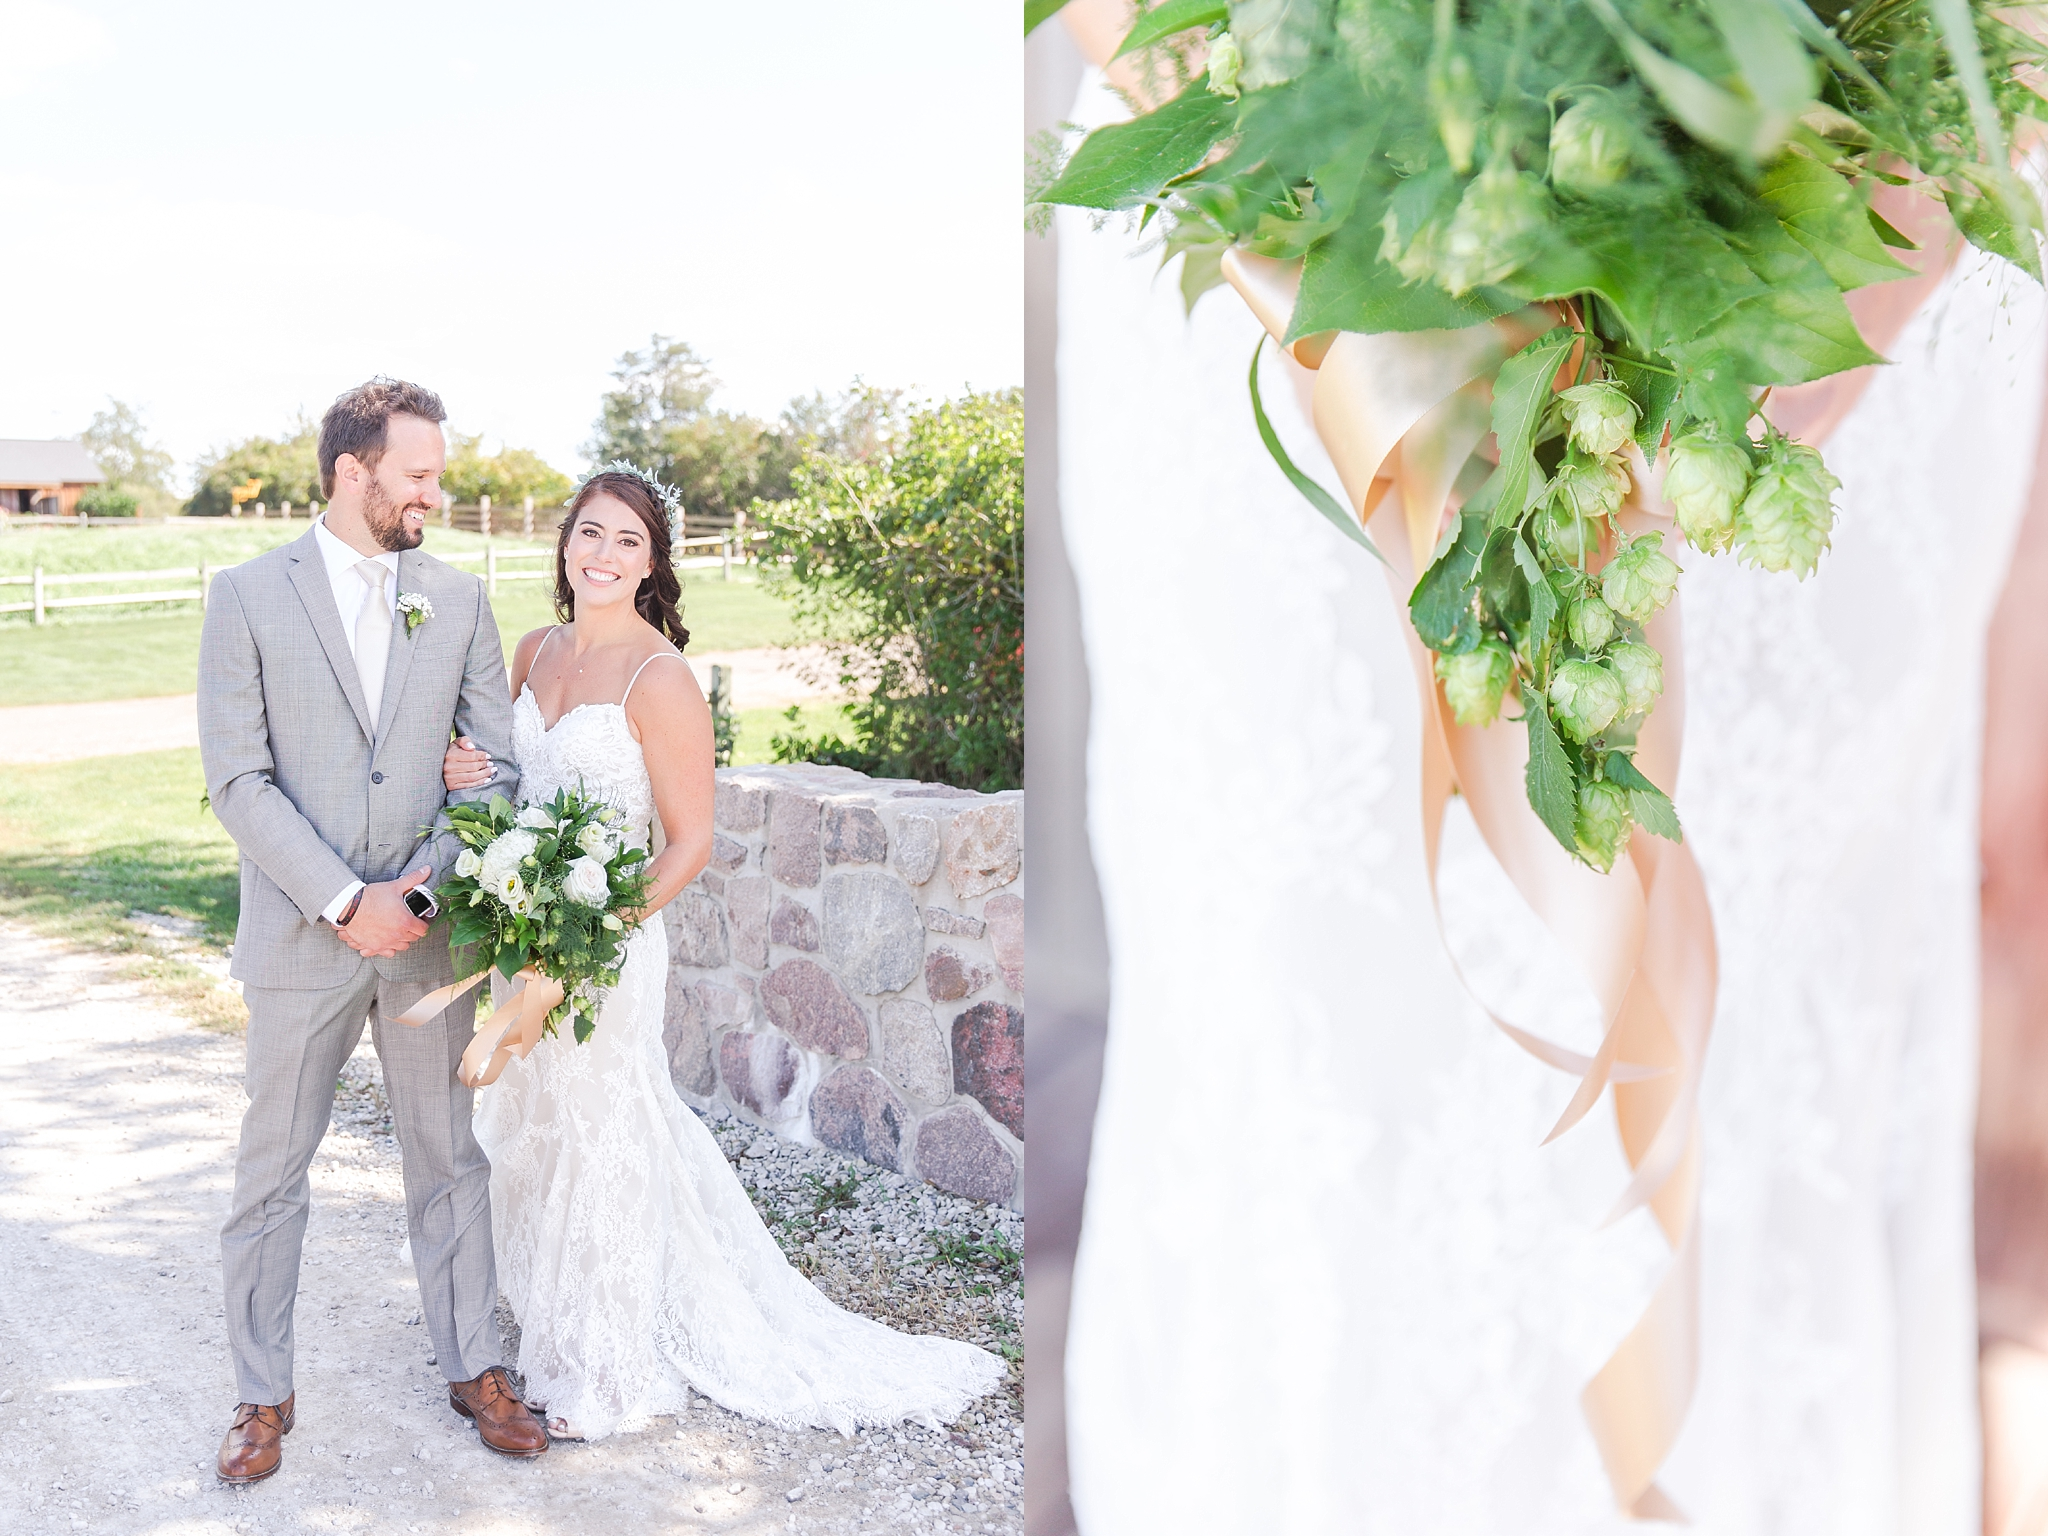 natural-rustic-wedding-photos-at-frutig-farms-the-valley-in-ann-arbor-michigan-by-courtney-carolyn-photography_0041.jpg